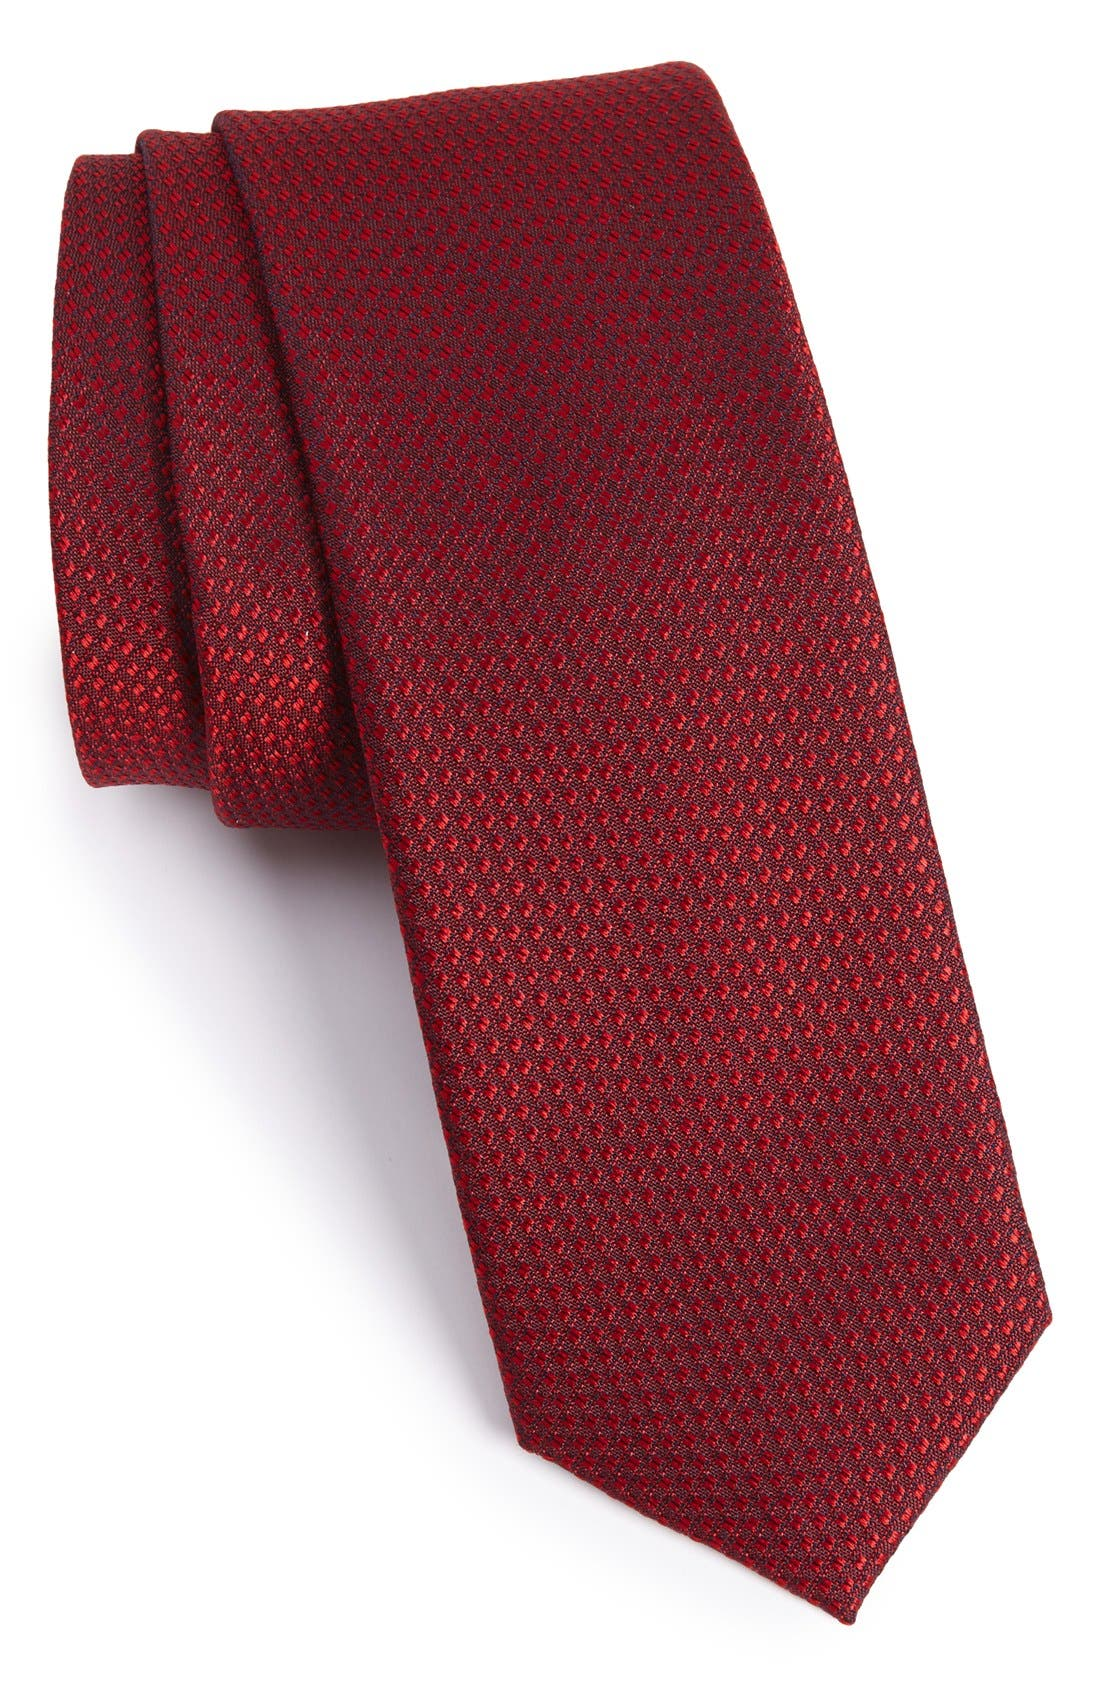 Seattle Textured Silk Tie,                             Main thumbnail 1, color,                             Burgundy